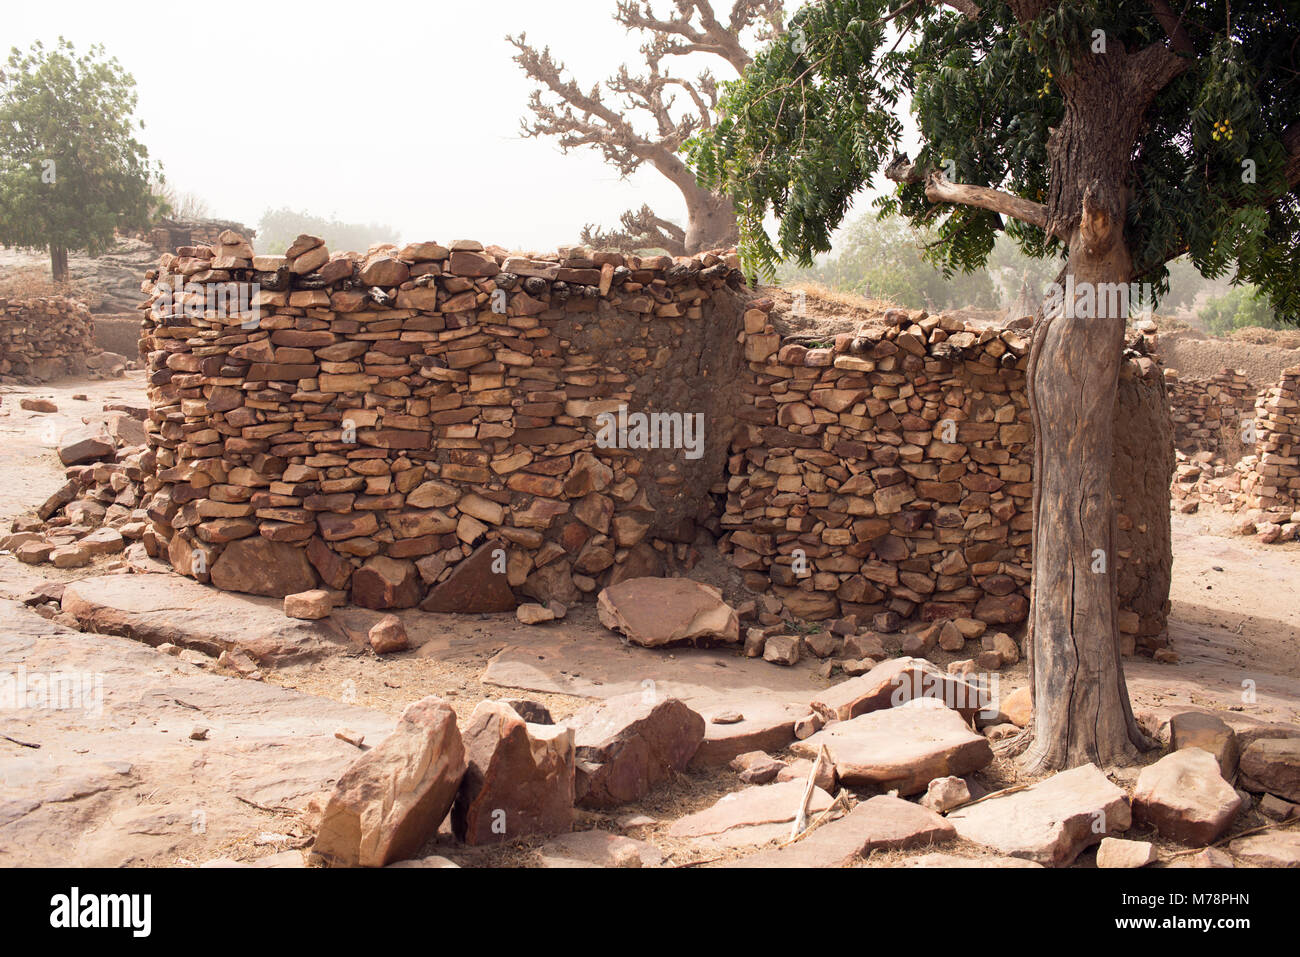 A menstrual house in a Dogon village in Mali West Africa. Menstruating girls and women are banished to this house - Stock Image